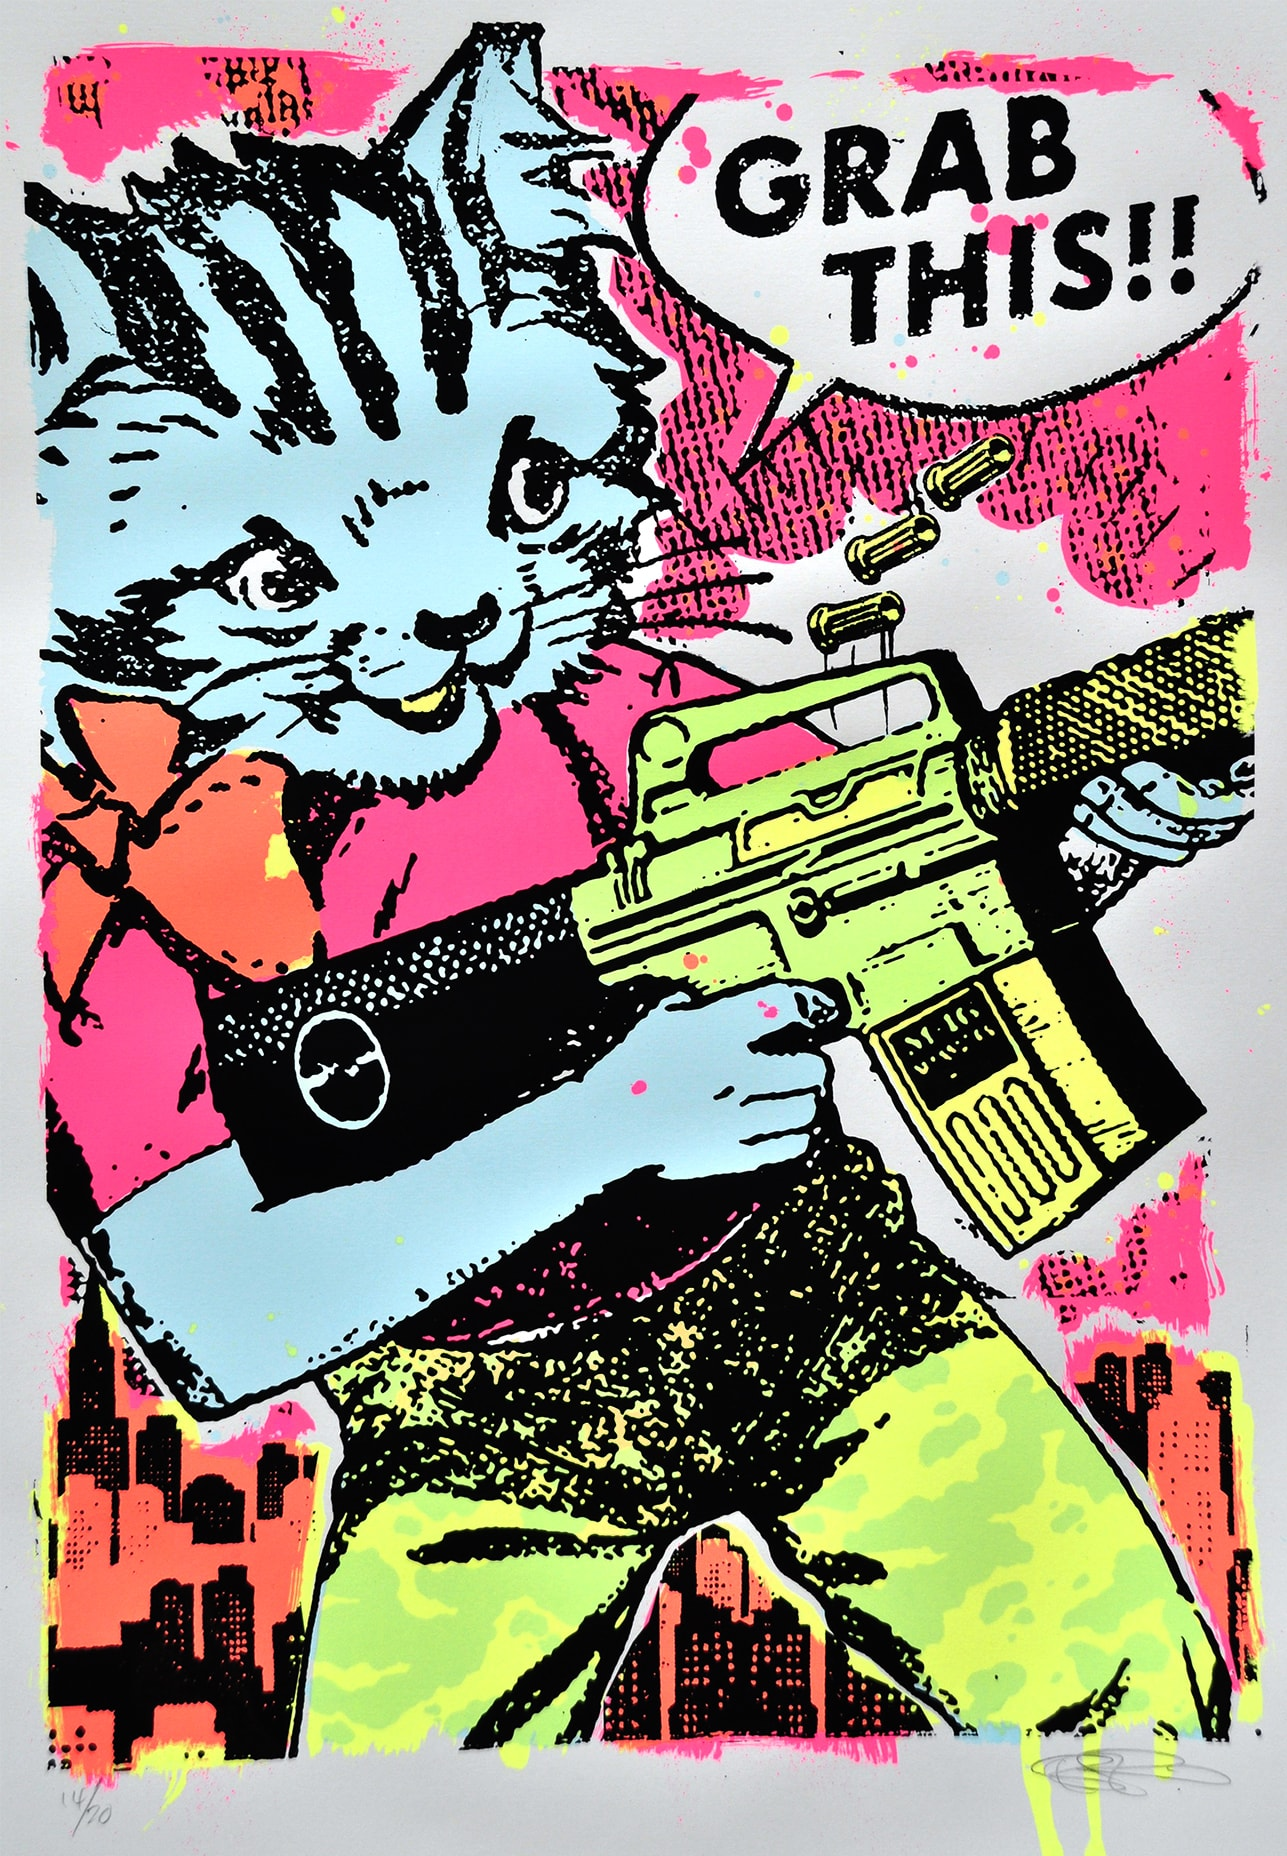 Ben Rider's bright fluorescent collaged style is instantly recognisable and delightful. The piece that we've been loving (along with the rest of his collection) has been 'Grab This' ( https://goo.gl/vMHsY2 ), featured at the Whitecross Street Party as a hand finished paste up. If cute kittens toting M16's are your thing then this is a printmaker for you. Ben's printing may look wild and whimsical, but behind the light hearted execution lies a very considered and seasoned printmaker who has painstakingly worked out his personal formula to exciting and dynamic printmaking, rich & ripe for enjoyment and interpretation. Recently he's been making some pretty amazing sculpture work which is well worth a look and will be very collectible. ( https://goo.gl/vWEGWj )  (follow Ben on instagram @zombiesqueegee)